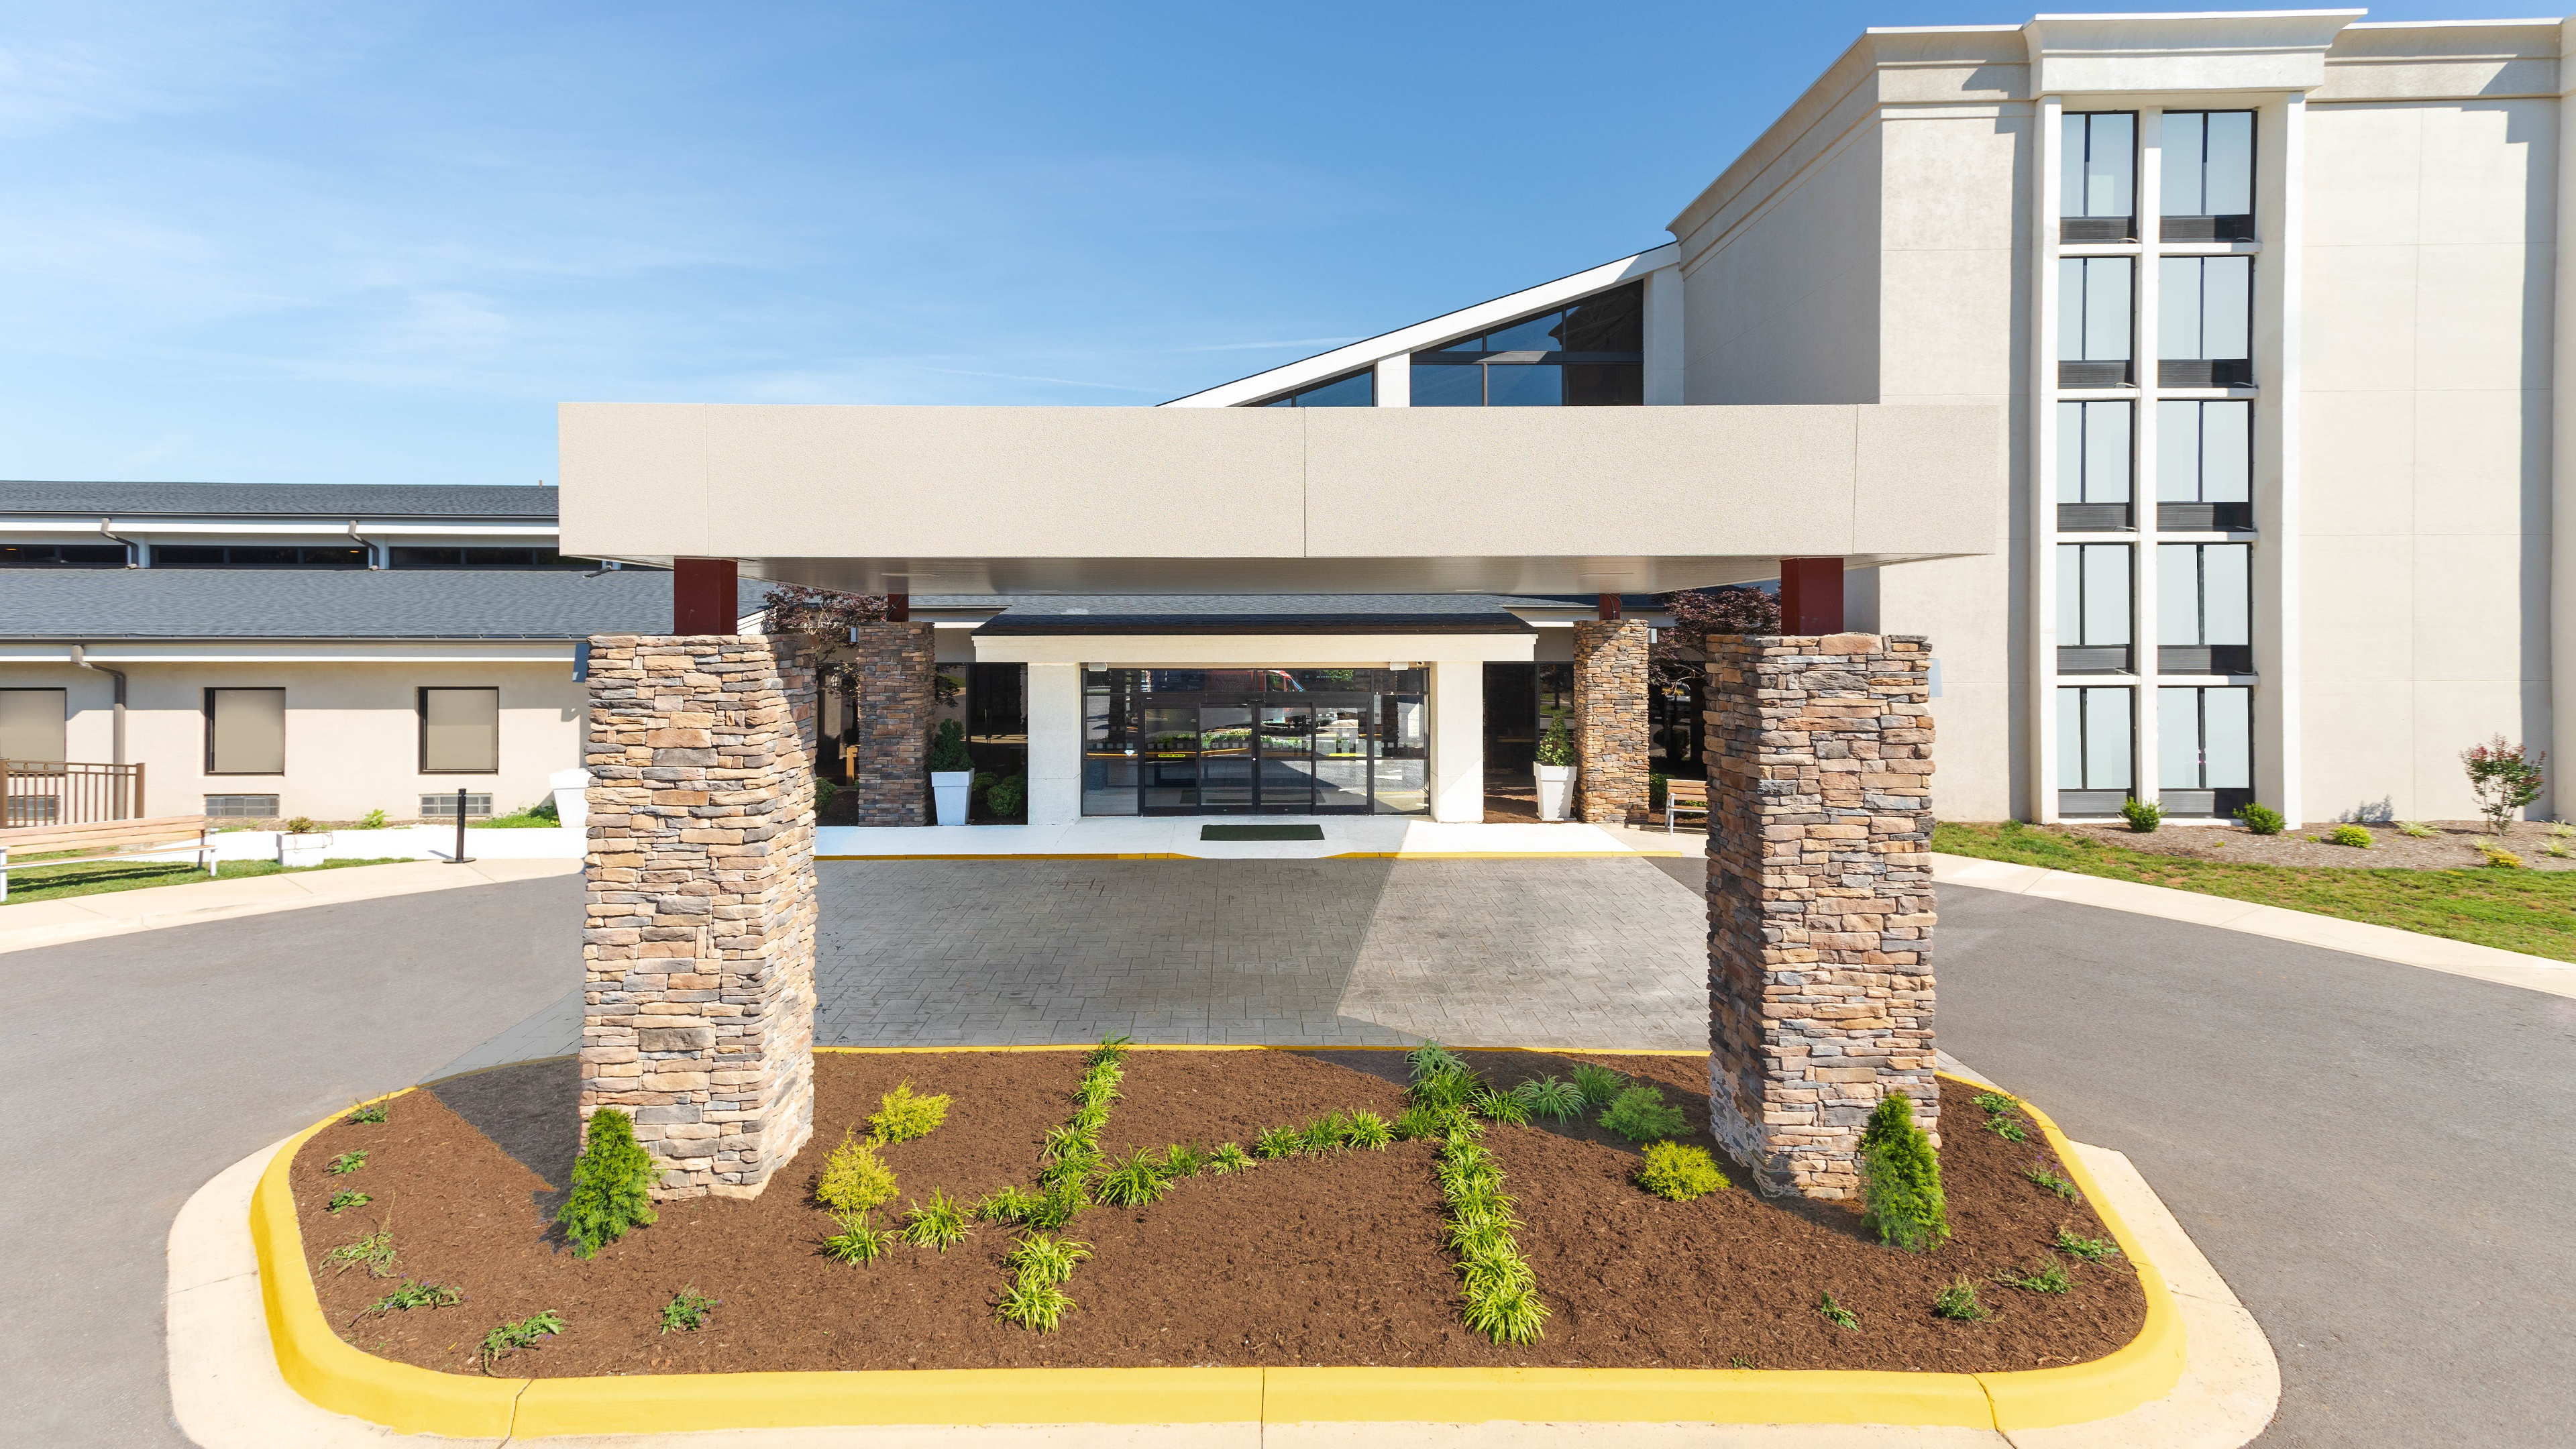 https://www.hotelsbyday.com/_data/default-hotel_image/4/21832/holiday-inn-roanoke-vv-entrance.jpg